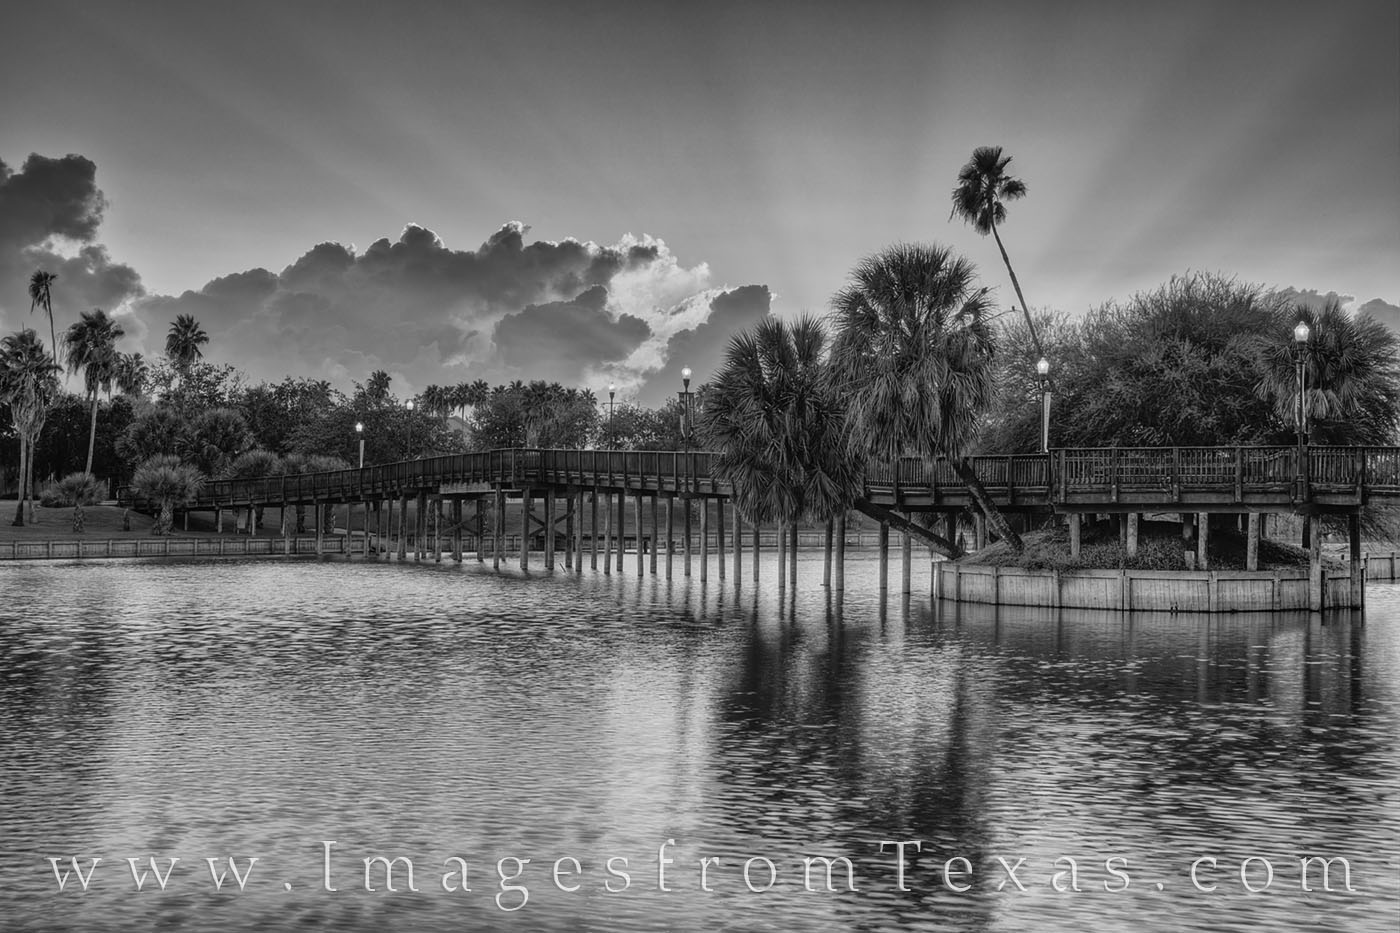 brownsville, south texas, resaca, wooden bridge, sunrise, dawn, texas coast, morning, texas southmost college, black and white, photo